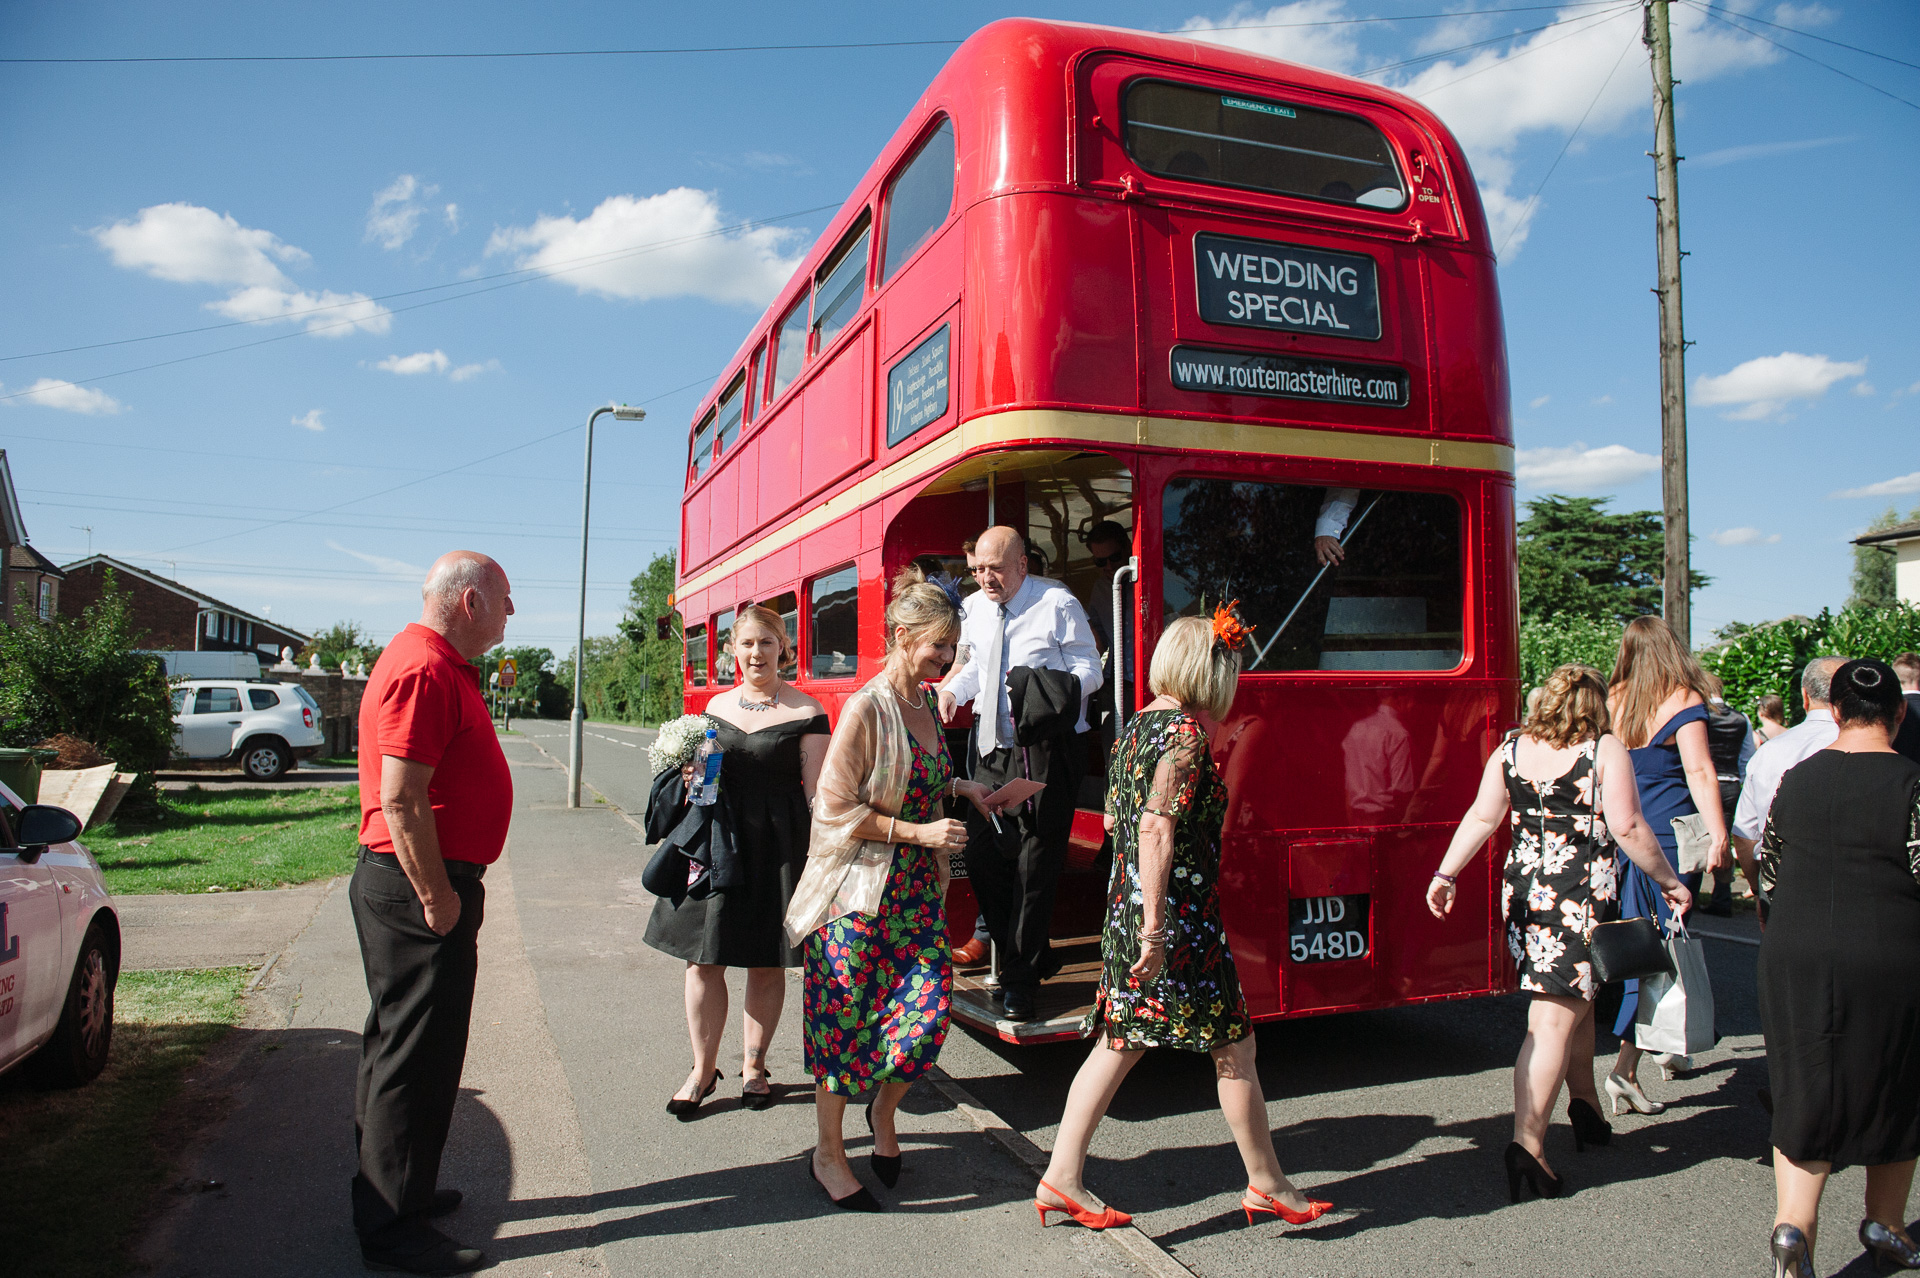 routemaster-wedding-bus.jpg